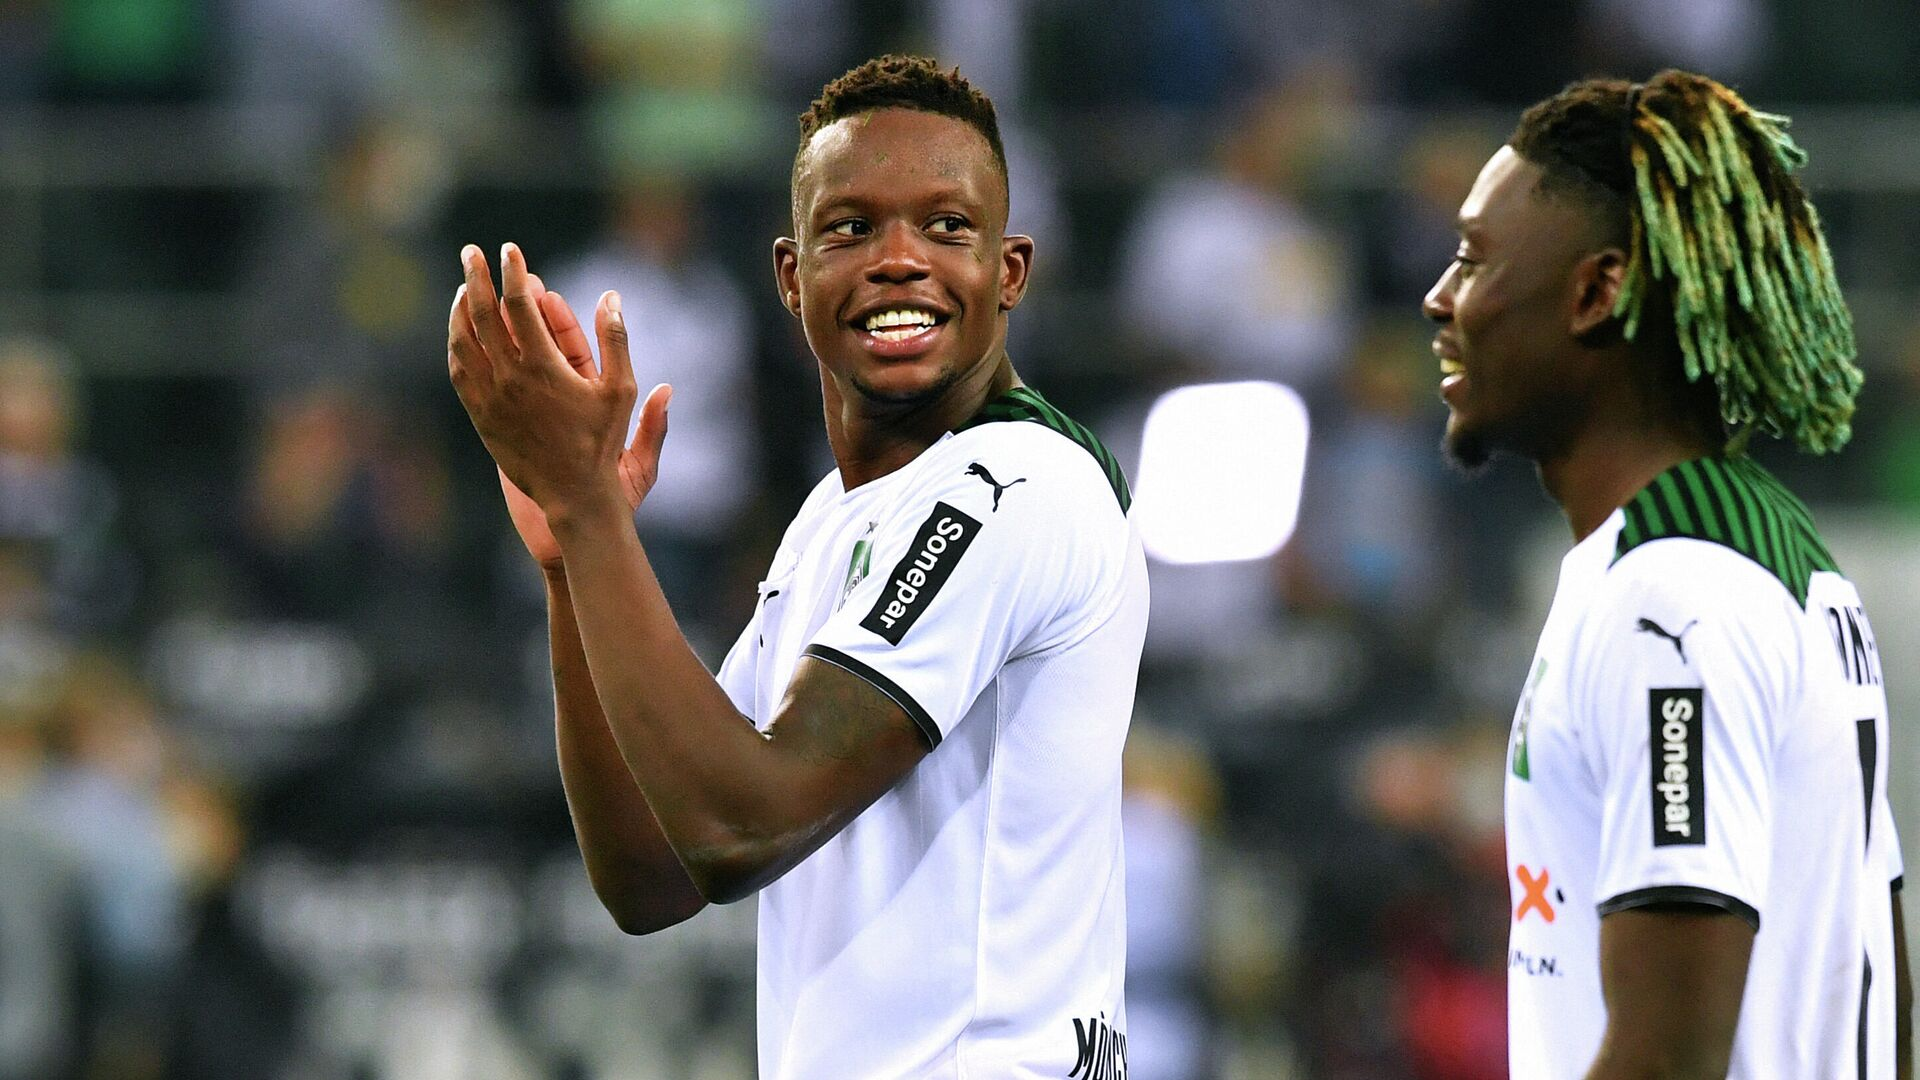 Moenchengladbach's Swiss midfielder Denis Zakaria (L) applauds after the German first division Bundesliga football match Borussia Moenchengladbach v BVB Borussia Dortmund in Moenchengladbach, western Germany, on September 25, 2021. (Photo by UWE KRAFT / AFP) / DFL REGULATIONS PROHIBIT ANY USE OF PHOTOGRAPHS AS IMAGE SEQUENCES AND/OR QUASI-VIDEO - РИА Новости, 1920, 25.09.2021